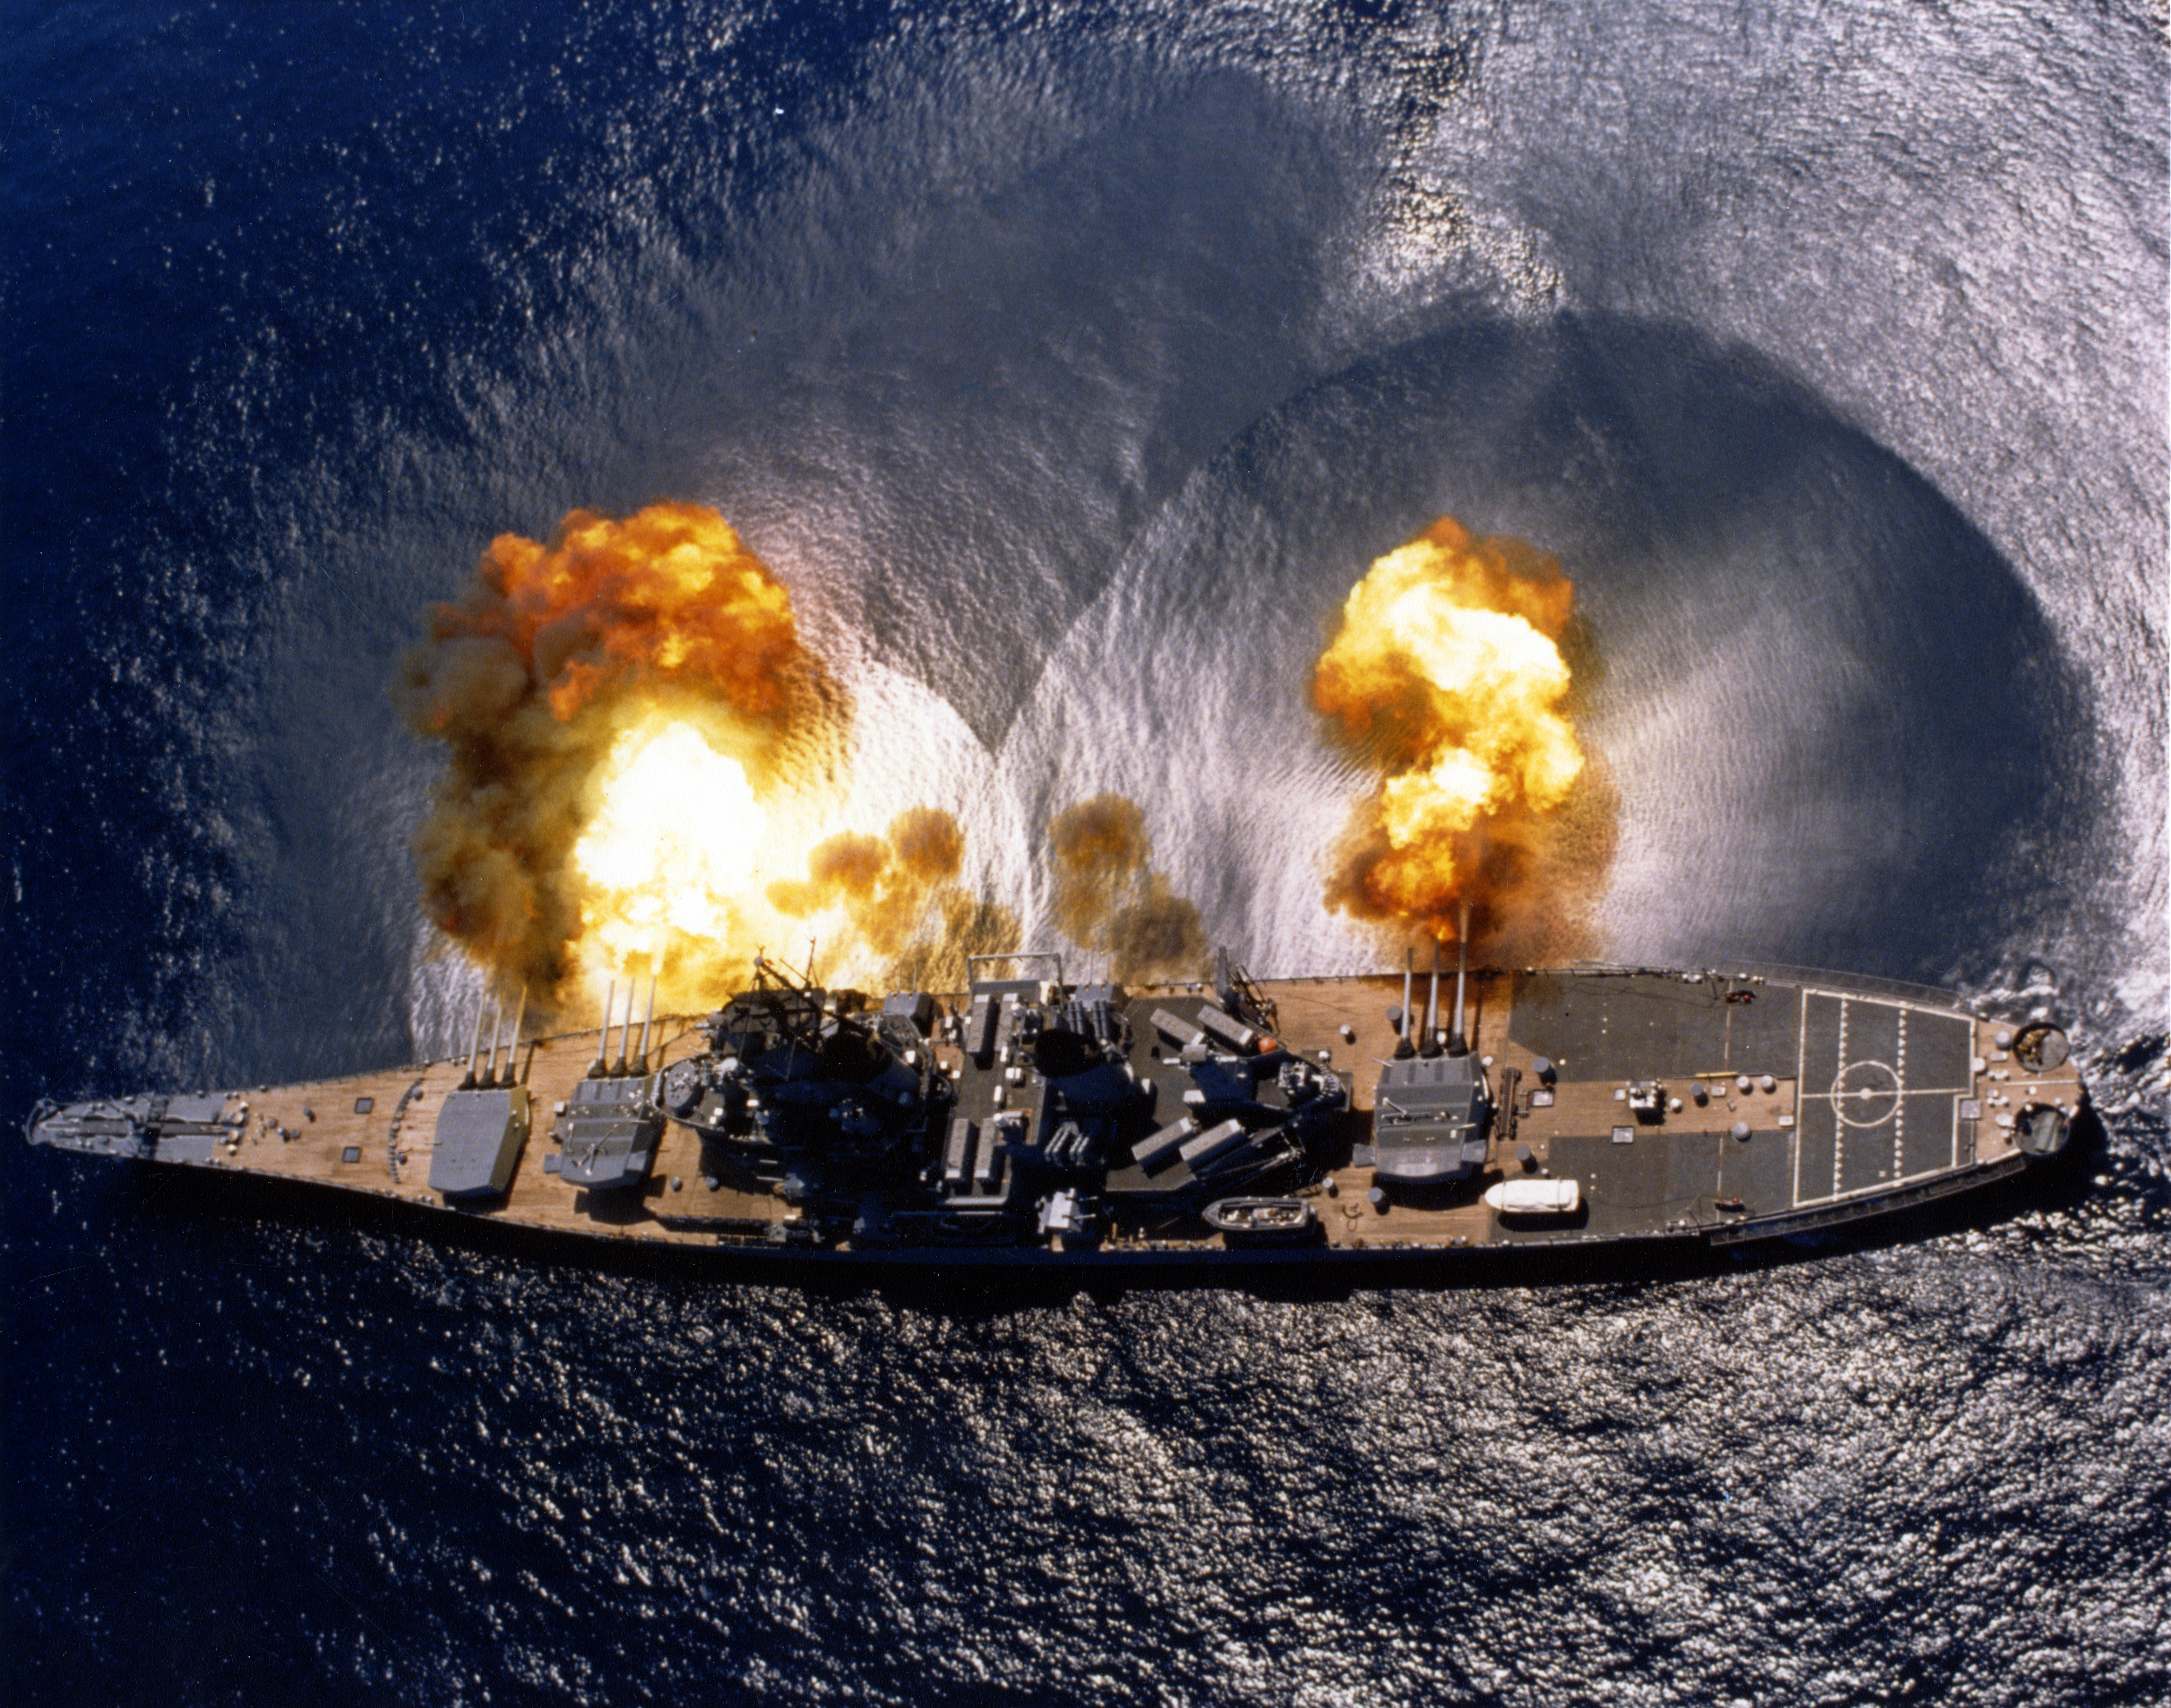 Aerial view of USS Iowa firing her main guns.  Note the shockwave visible on the water.